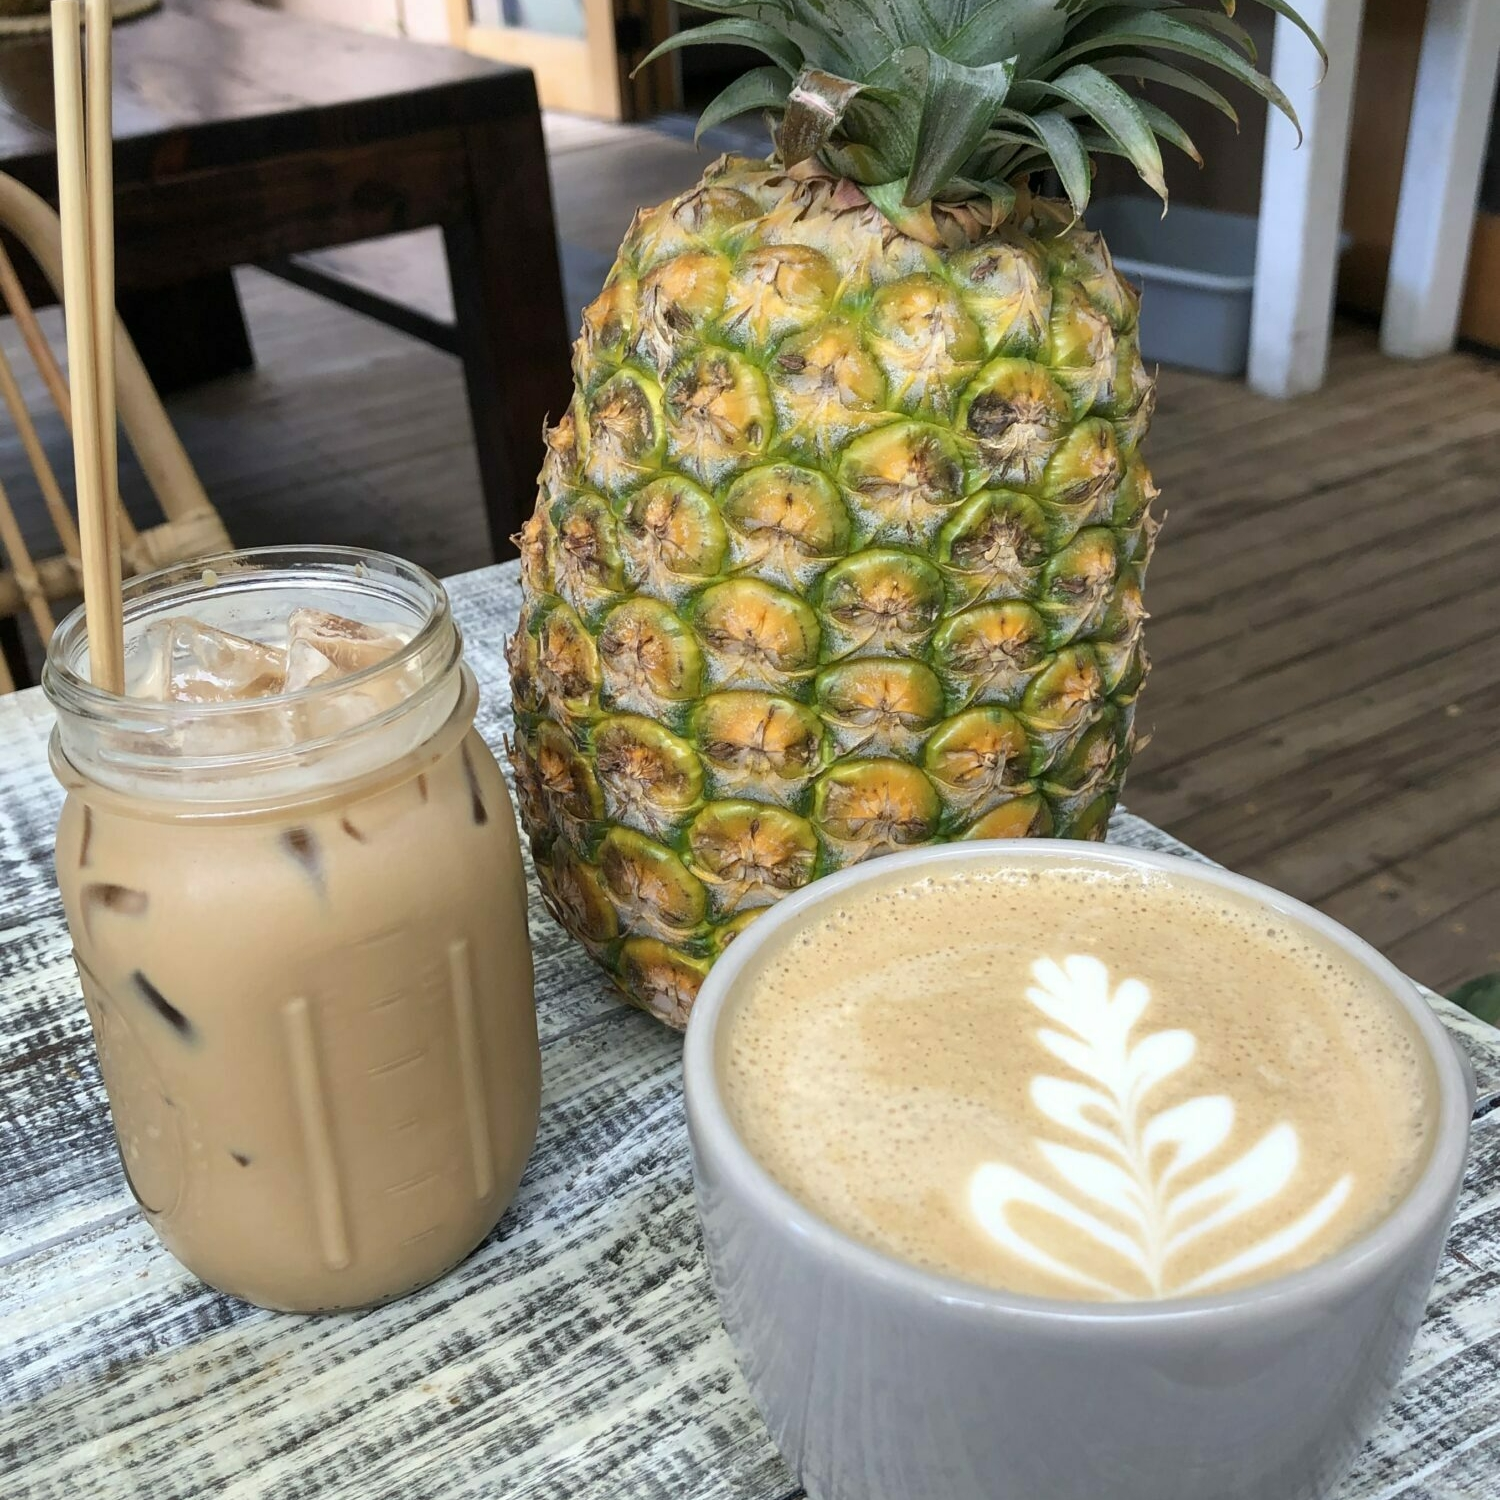 Cute Maui coffee shops